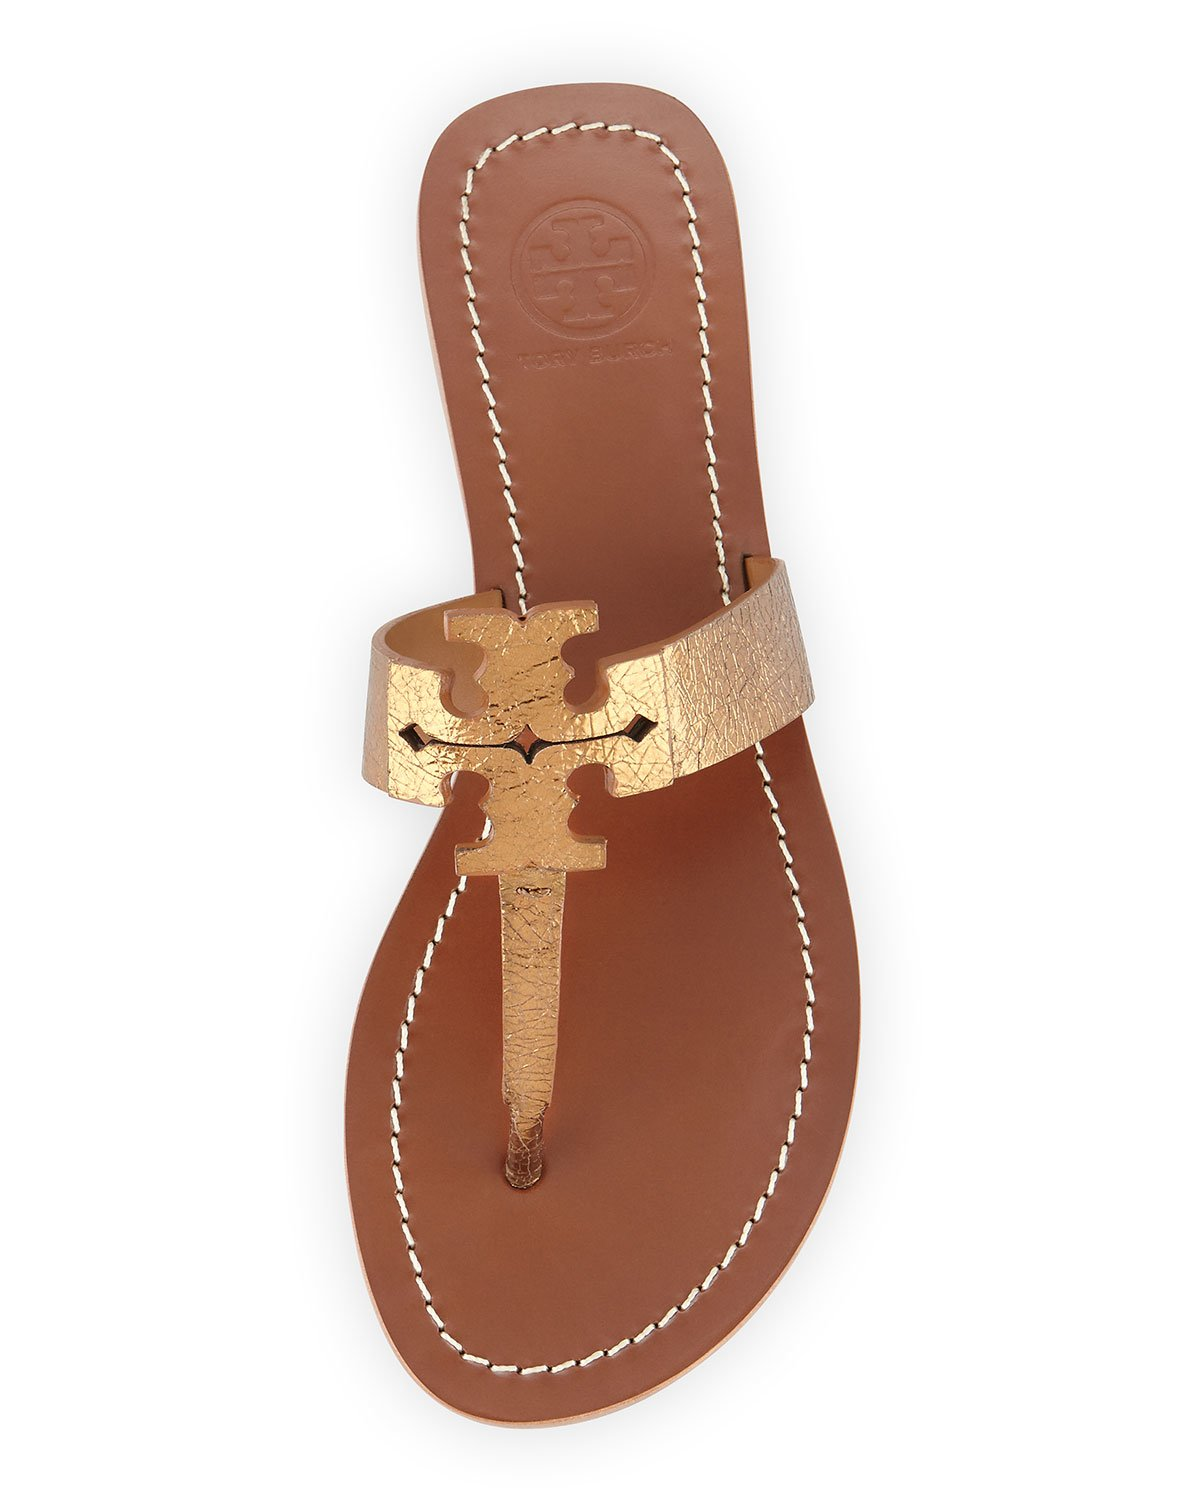 6d8ce11a7 Lyst - Tory Burch Moore Metallic Leather Sandal in Brown